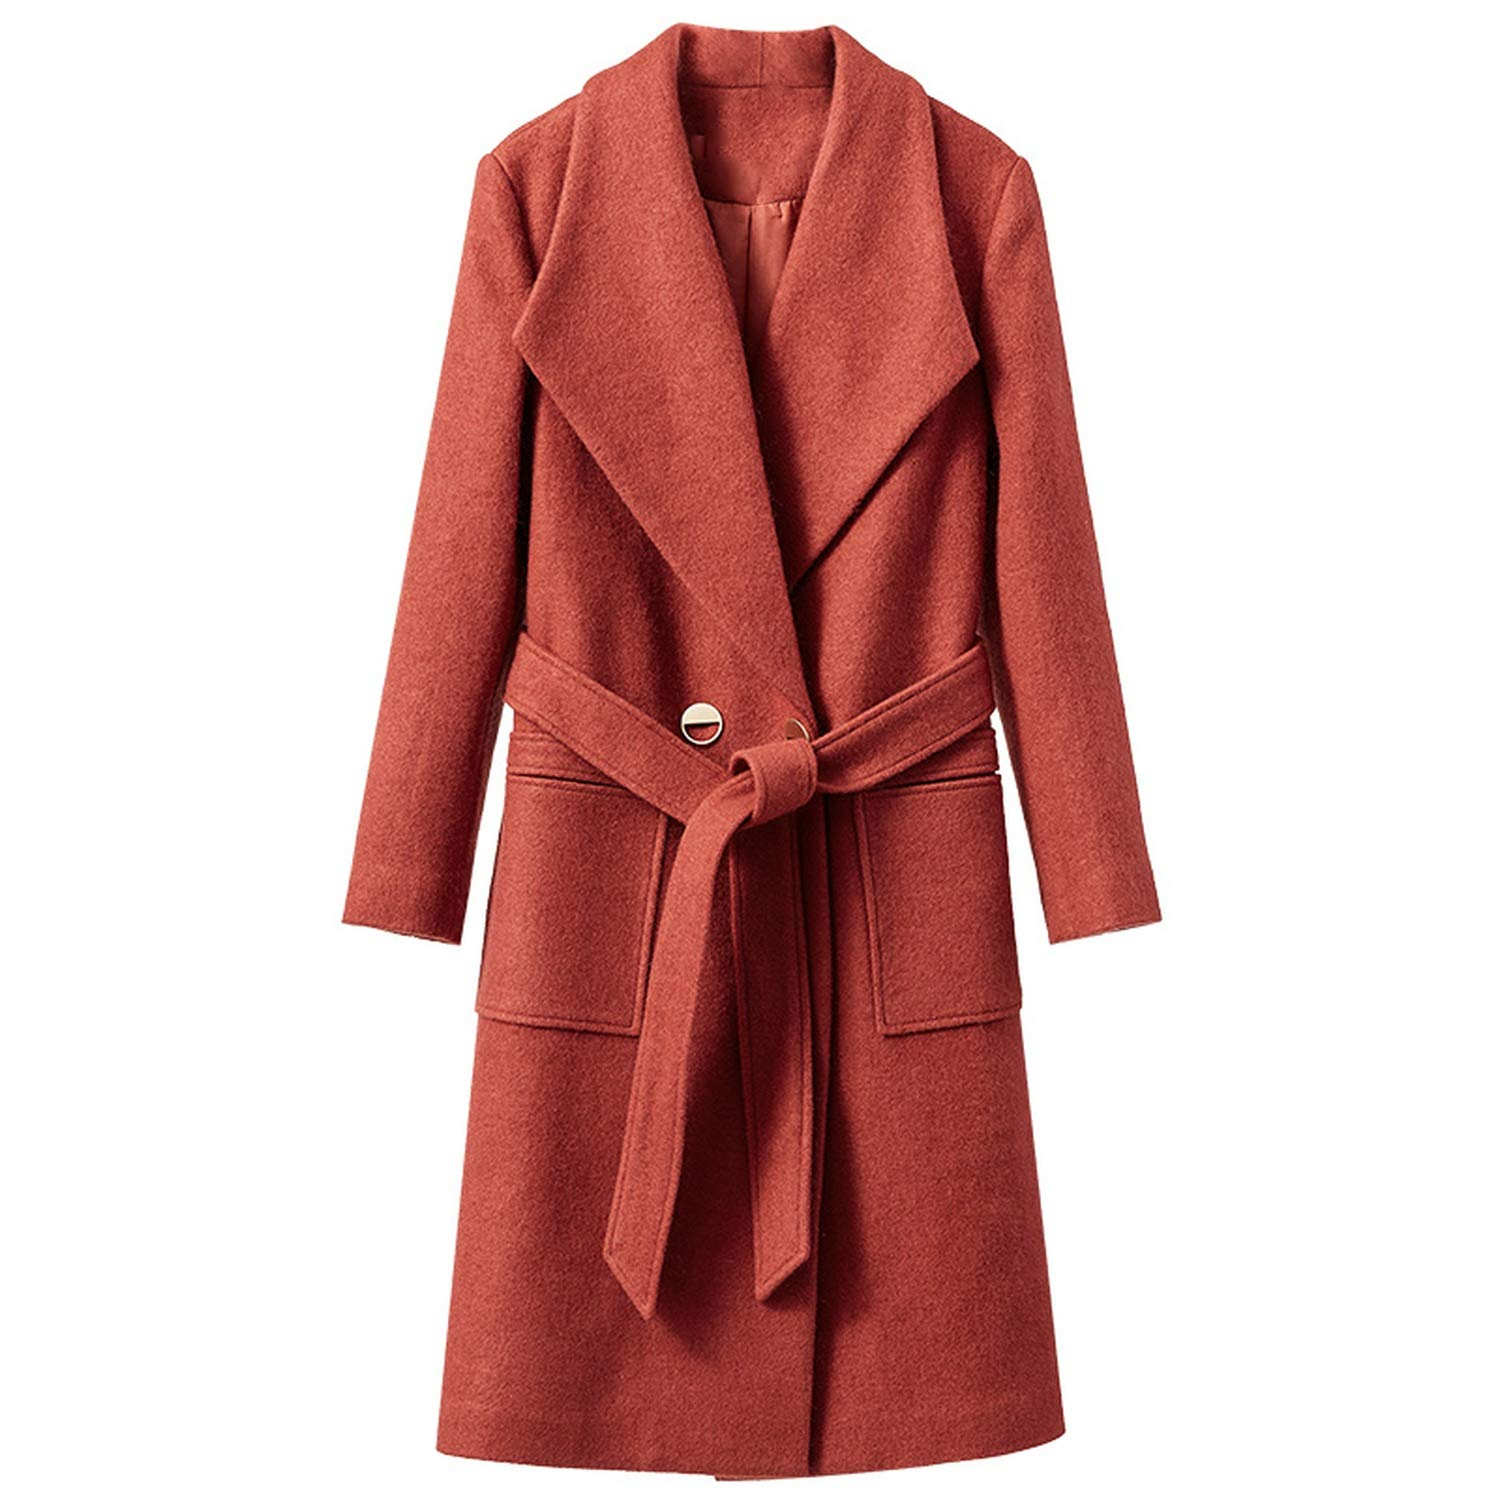 Amazon.com: Woolen Coat CoatsWoman Coat of Winter Double ...